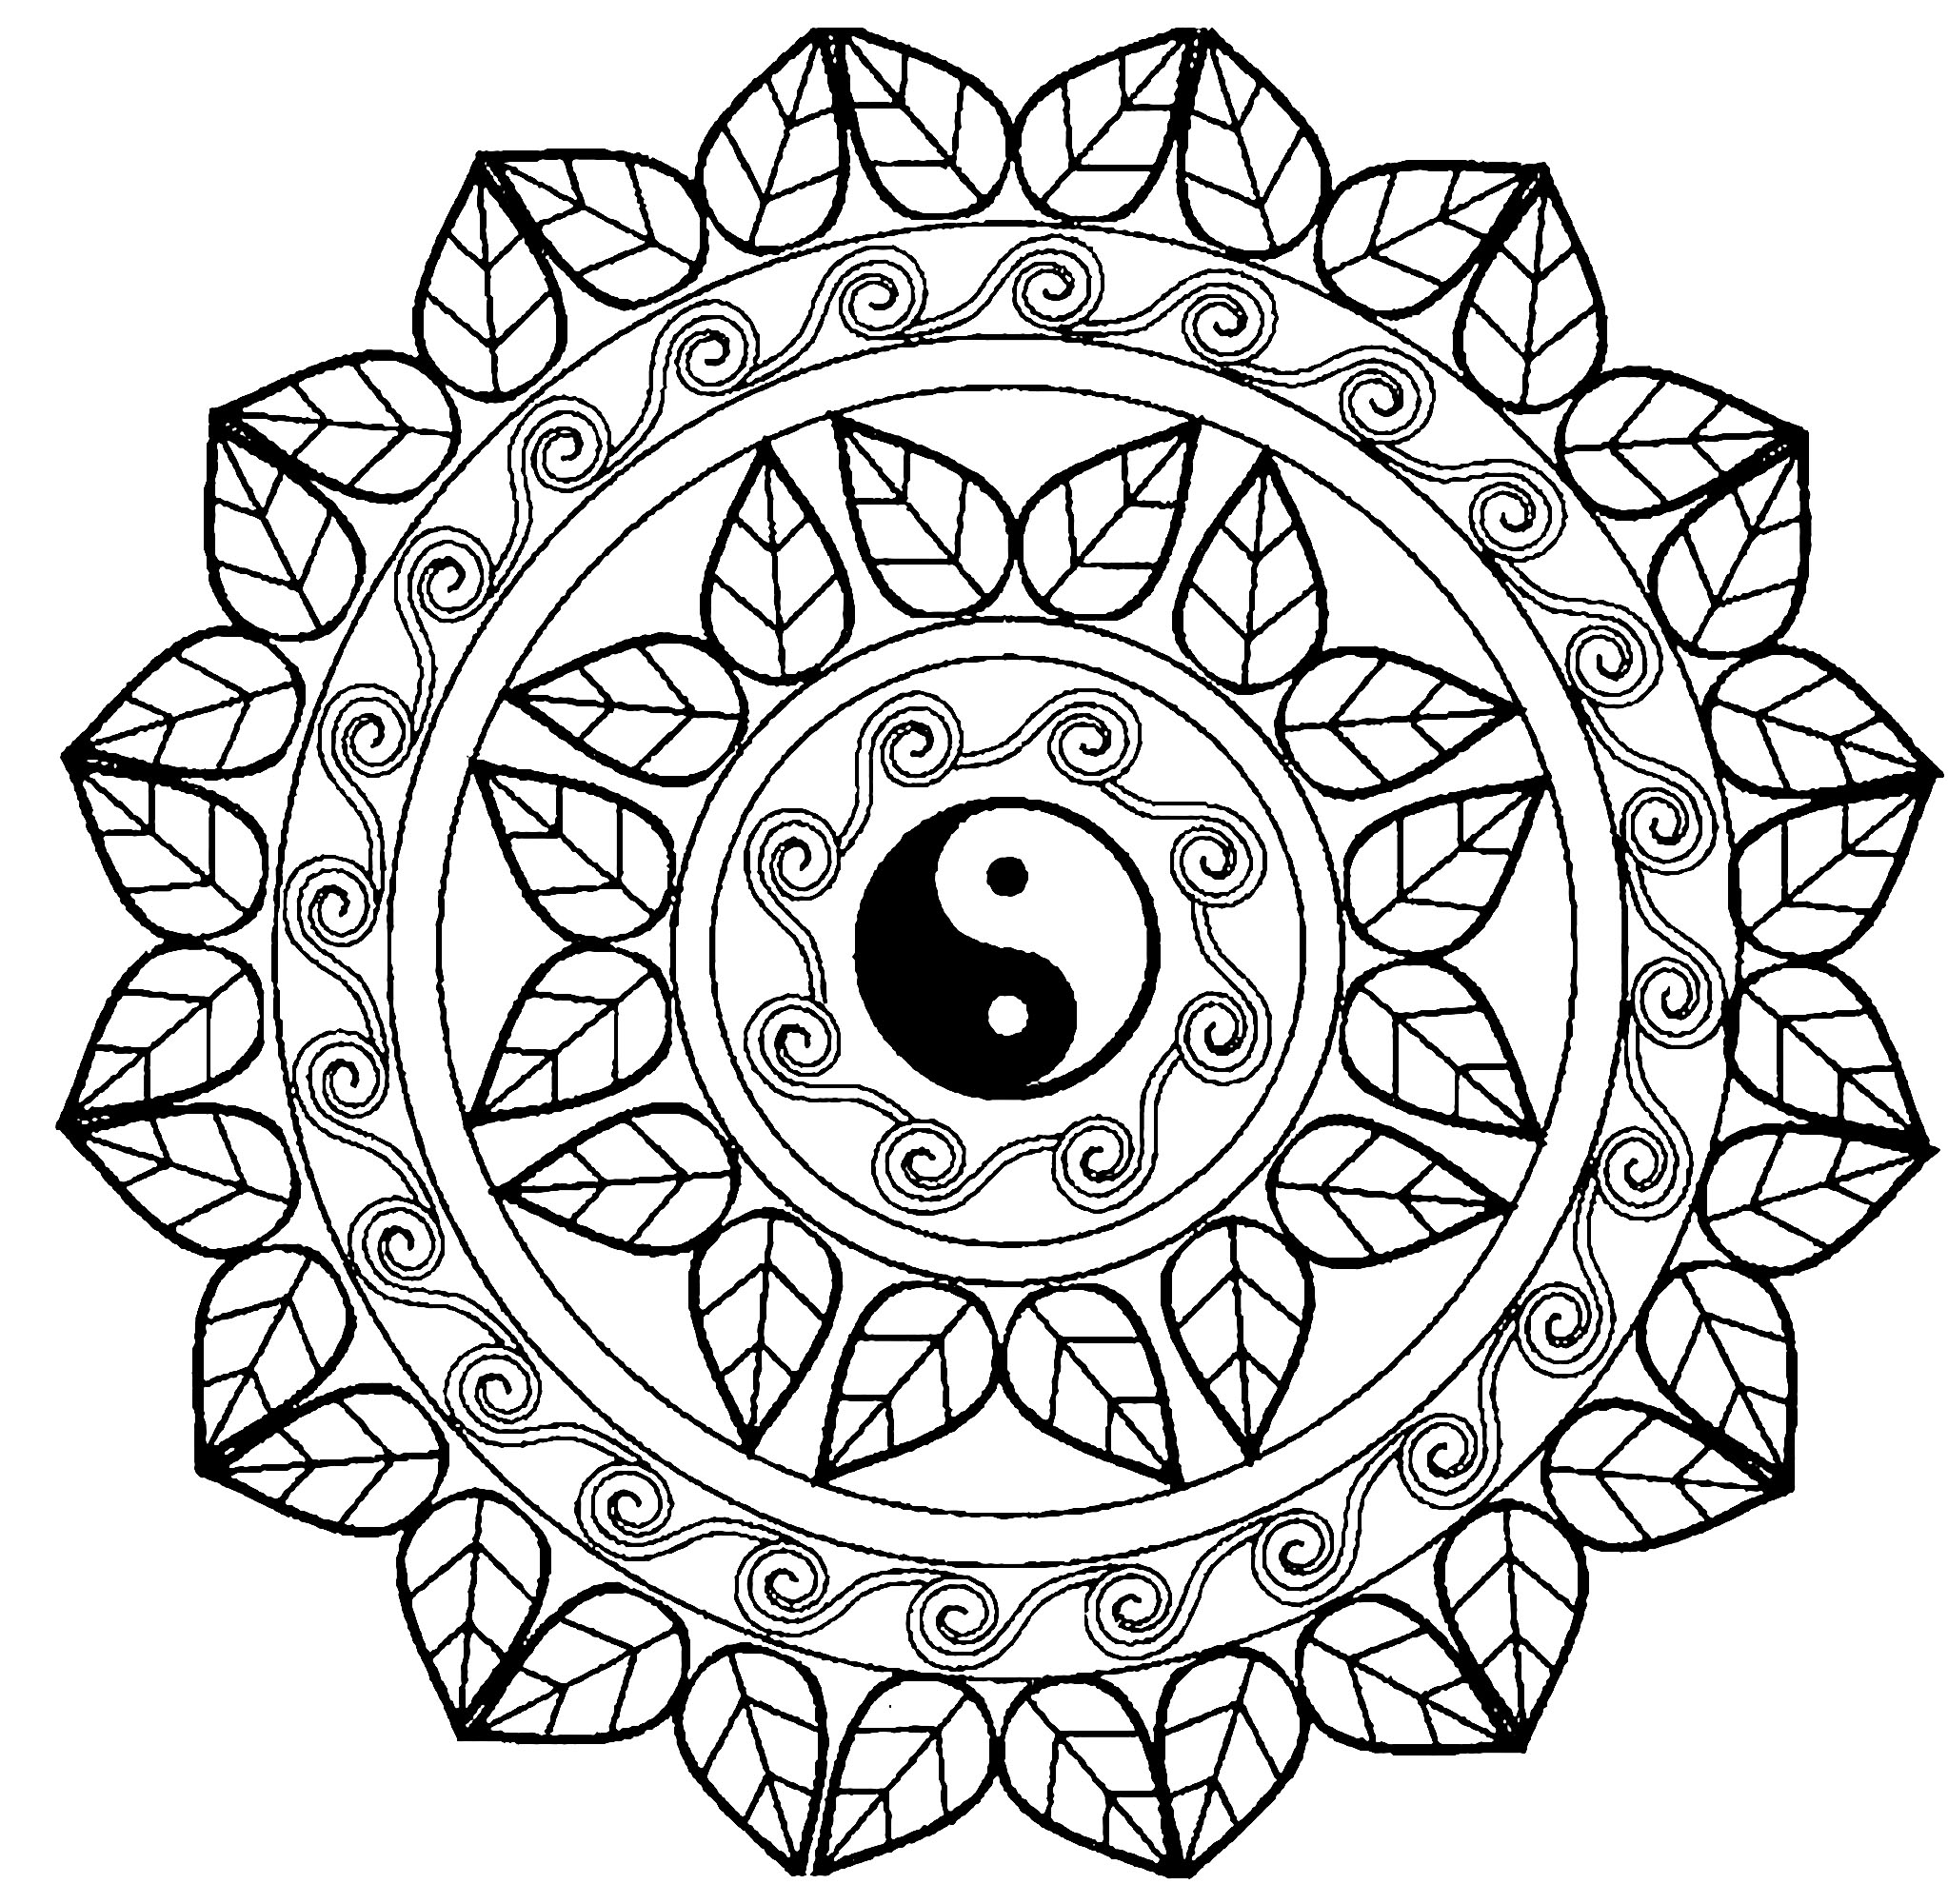 mandala pictures to color beautiful free mandala coloring pages skip to my lou pictures color mandala to